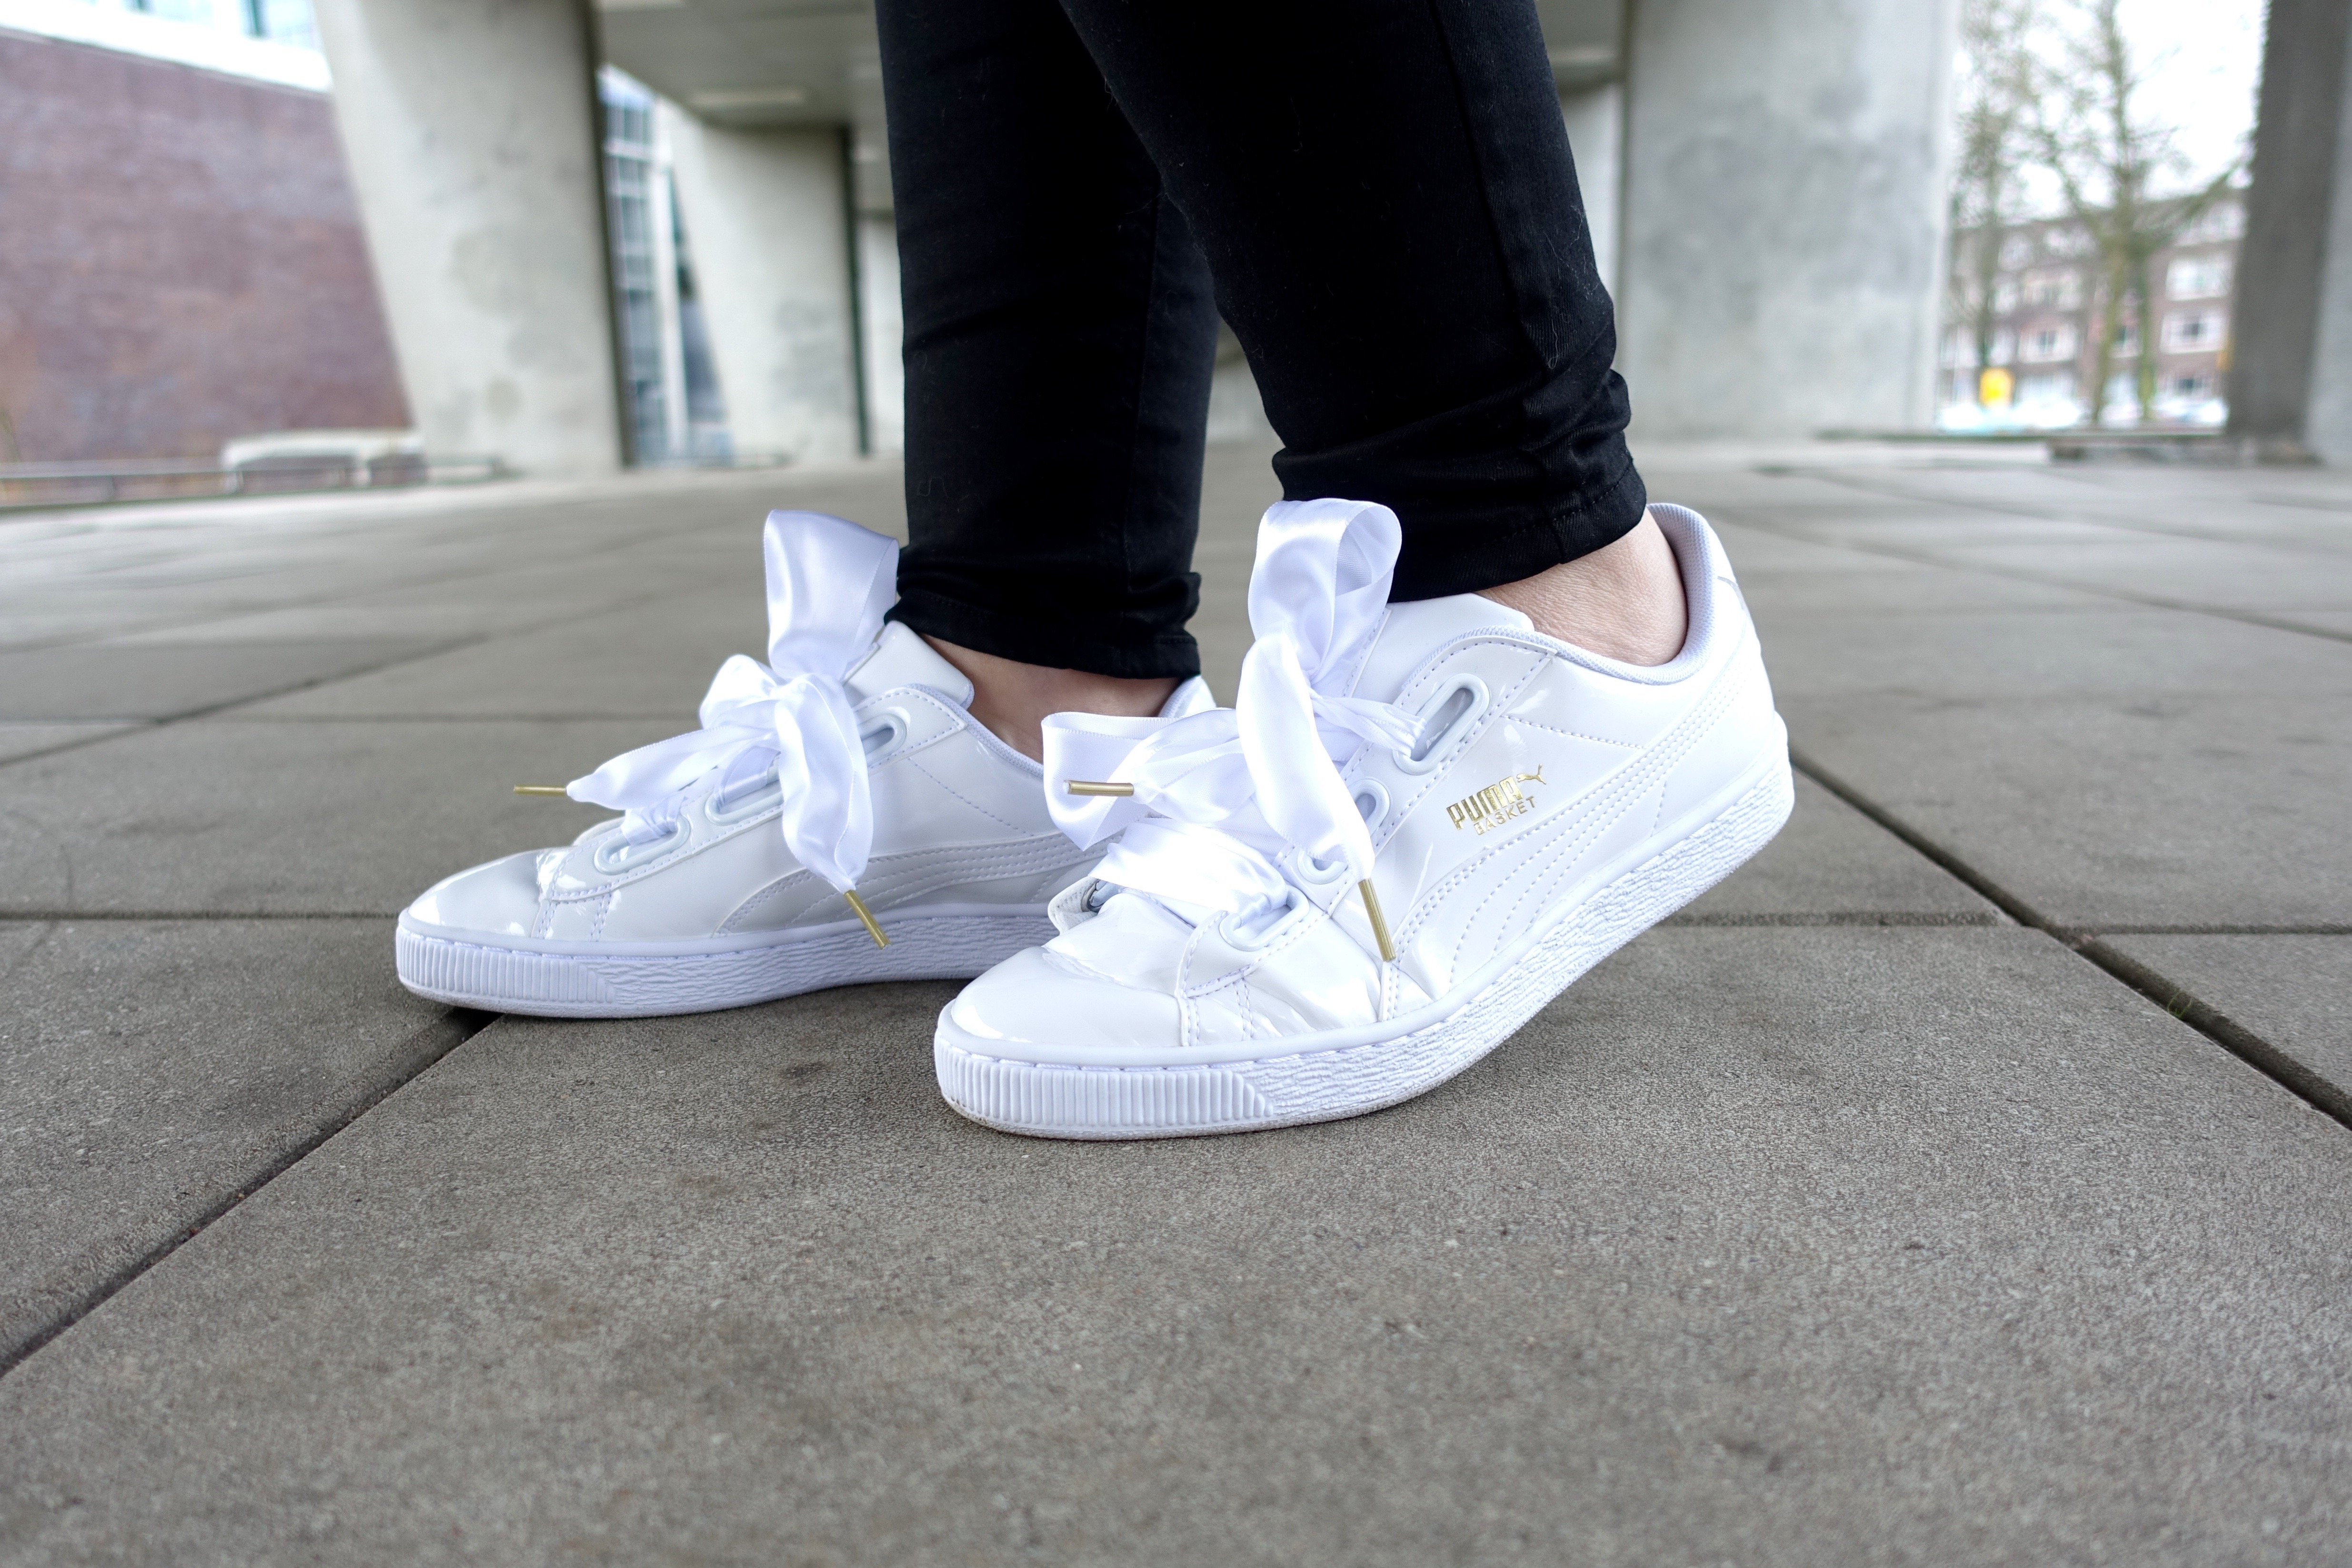 best sneakers b4d85 6e4e2 Puma Basket Heart Sneakers - Soap and Cookies